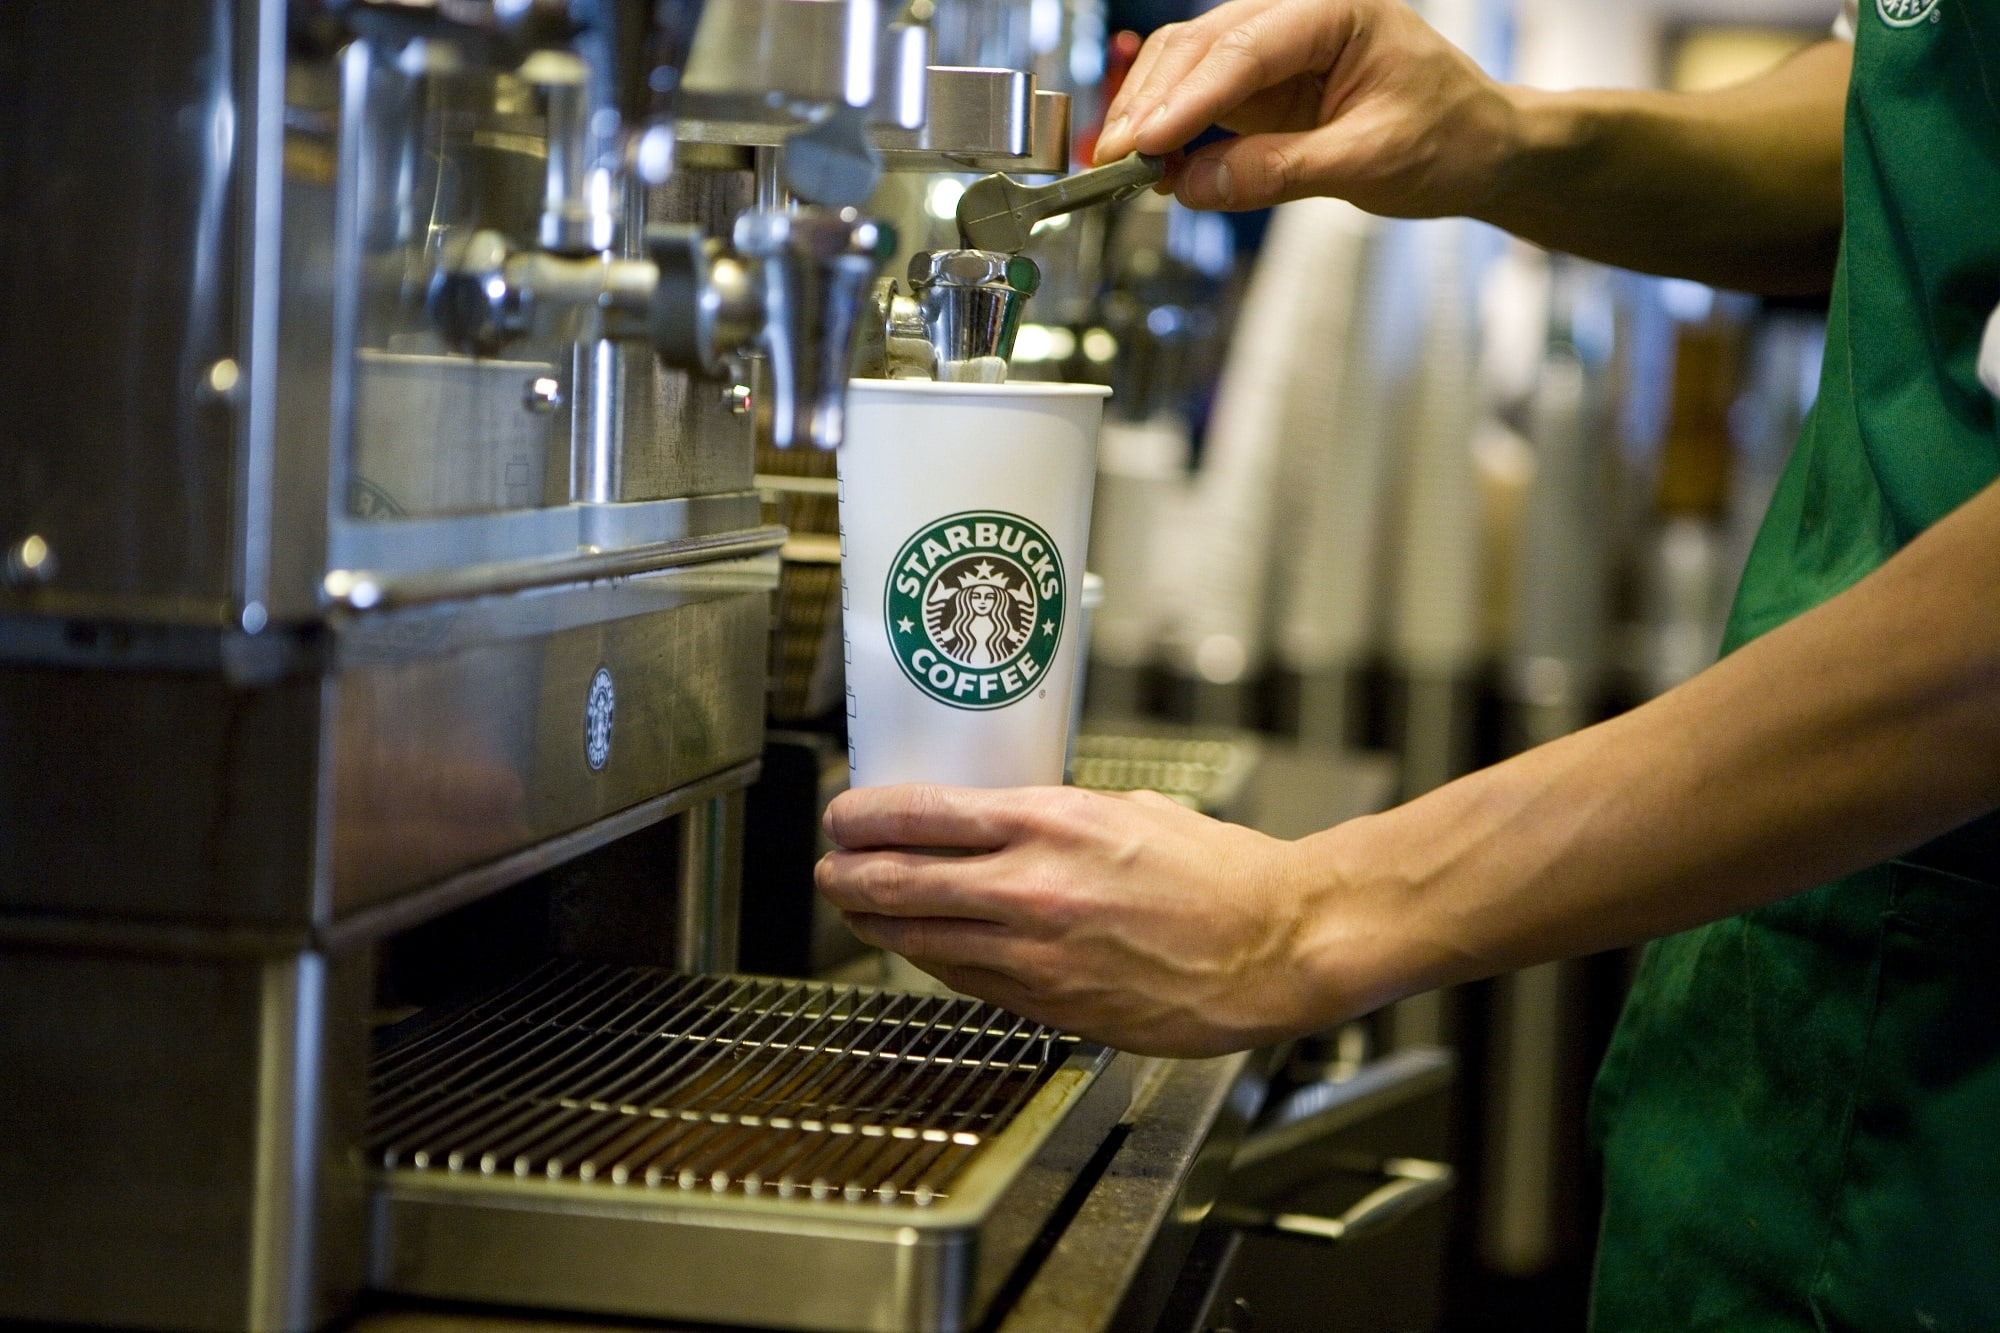 Starbucks May Be Bottoming After Painful Pullback, Tradinganalysis.com's Todd Gordon Says photo